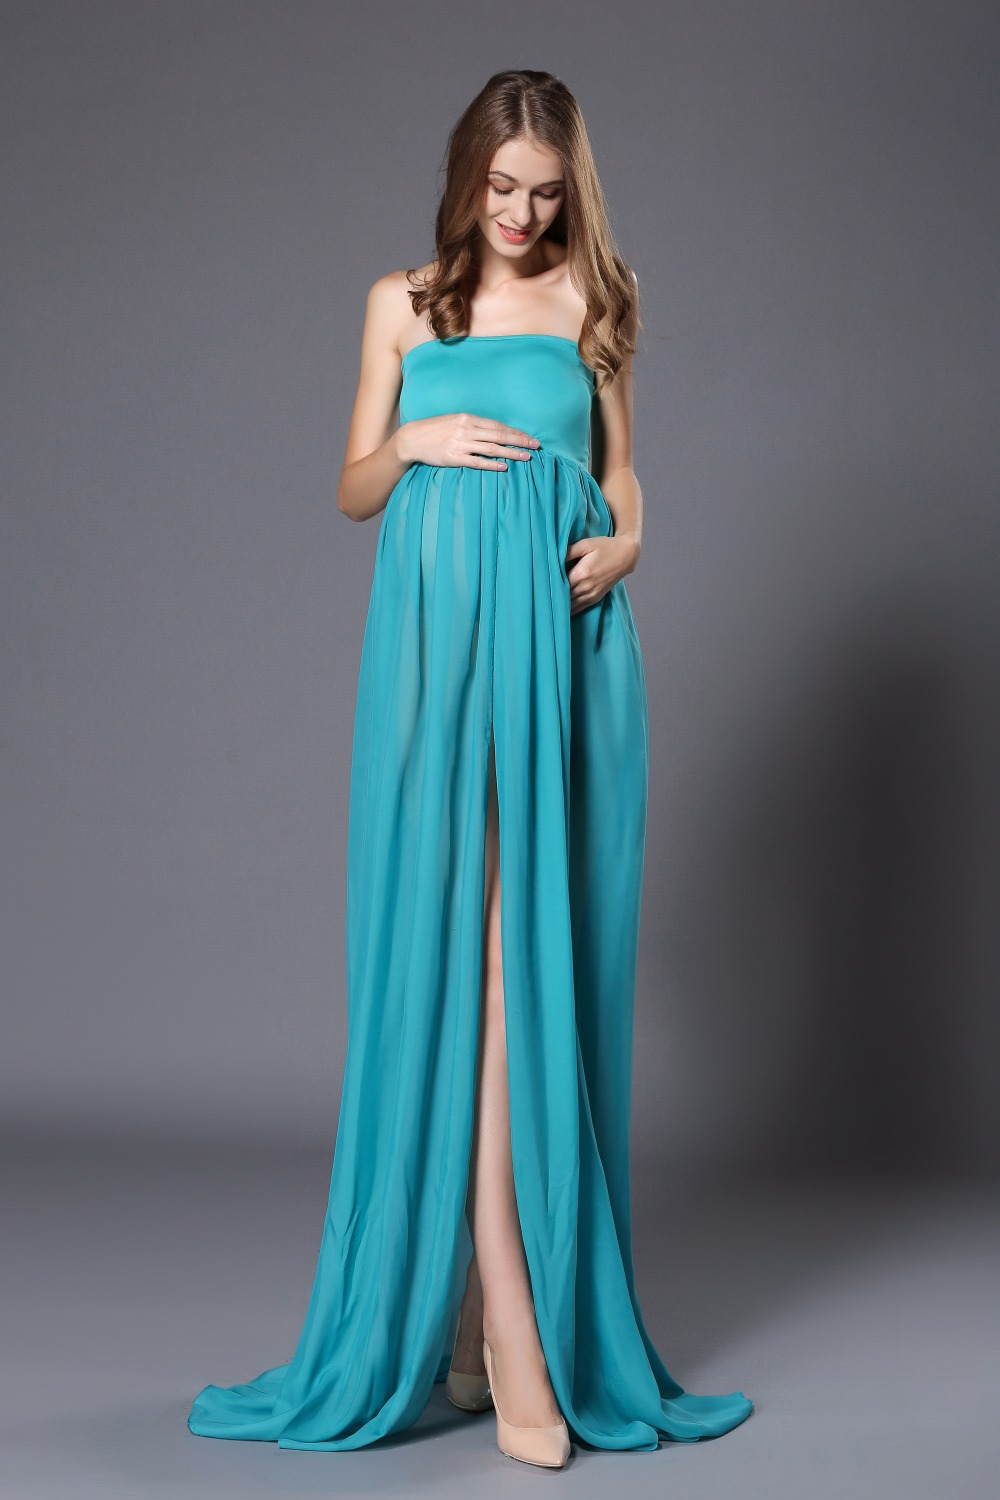 Perfect Maternity Christmas Party Dresses Illustration - All Wedding ...